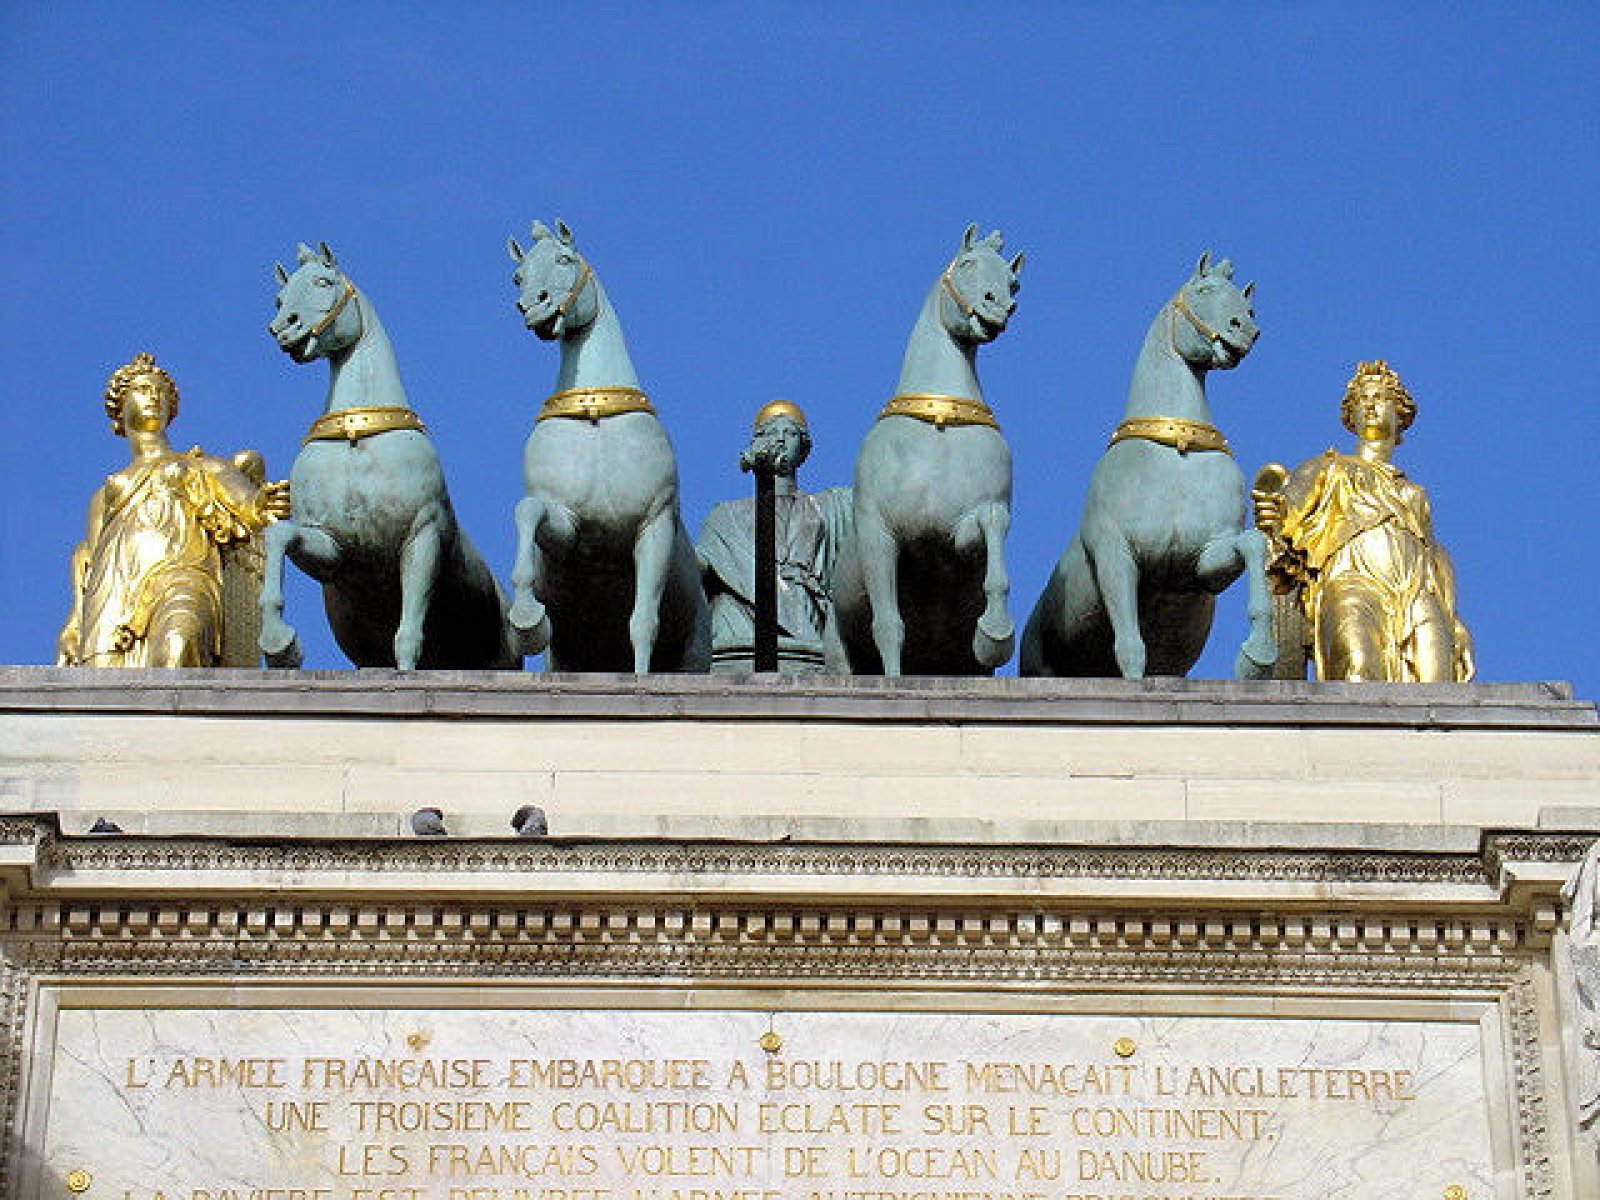 Arch of Triumphe, Paris, France, Statues above